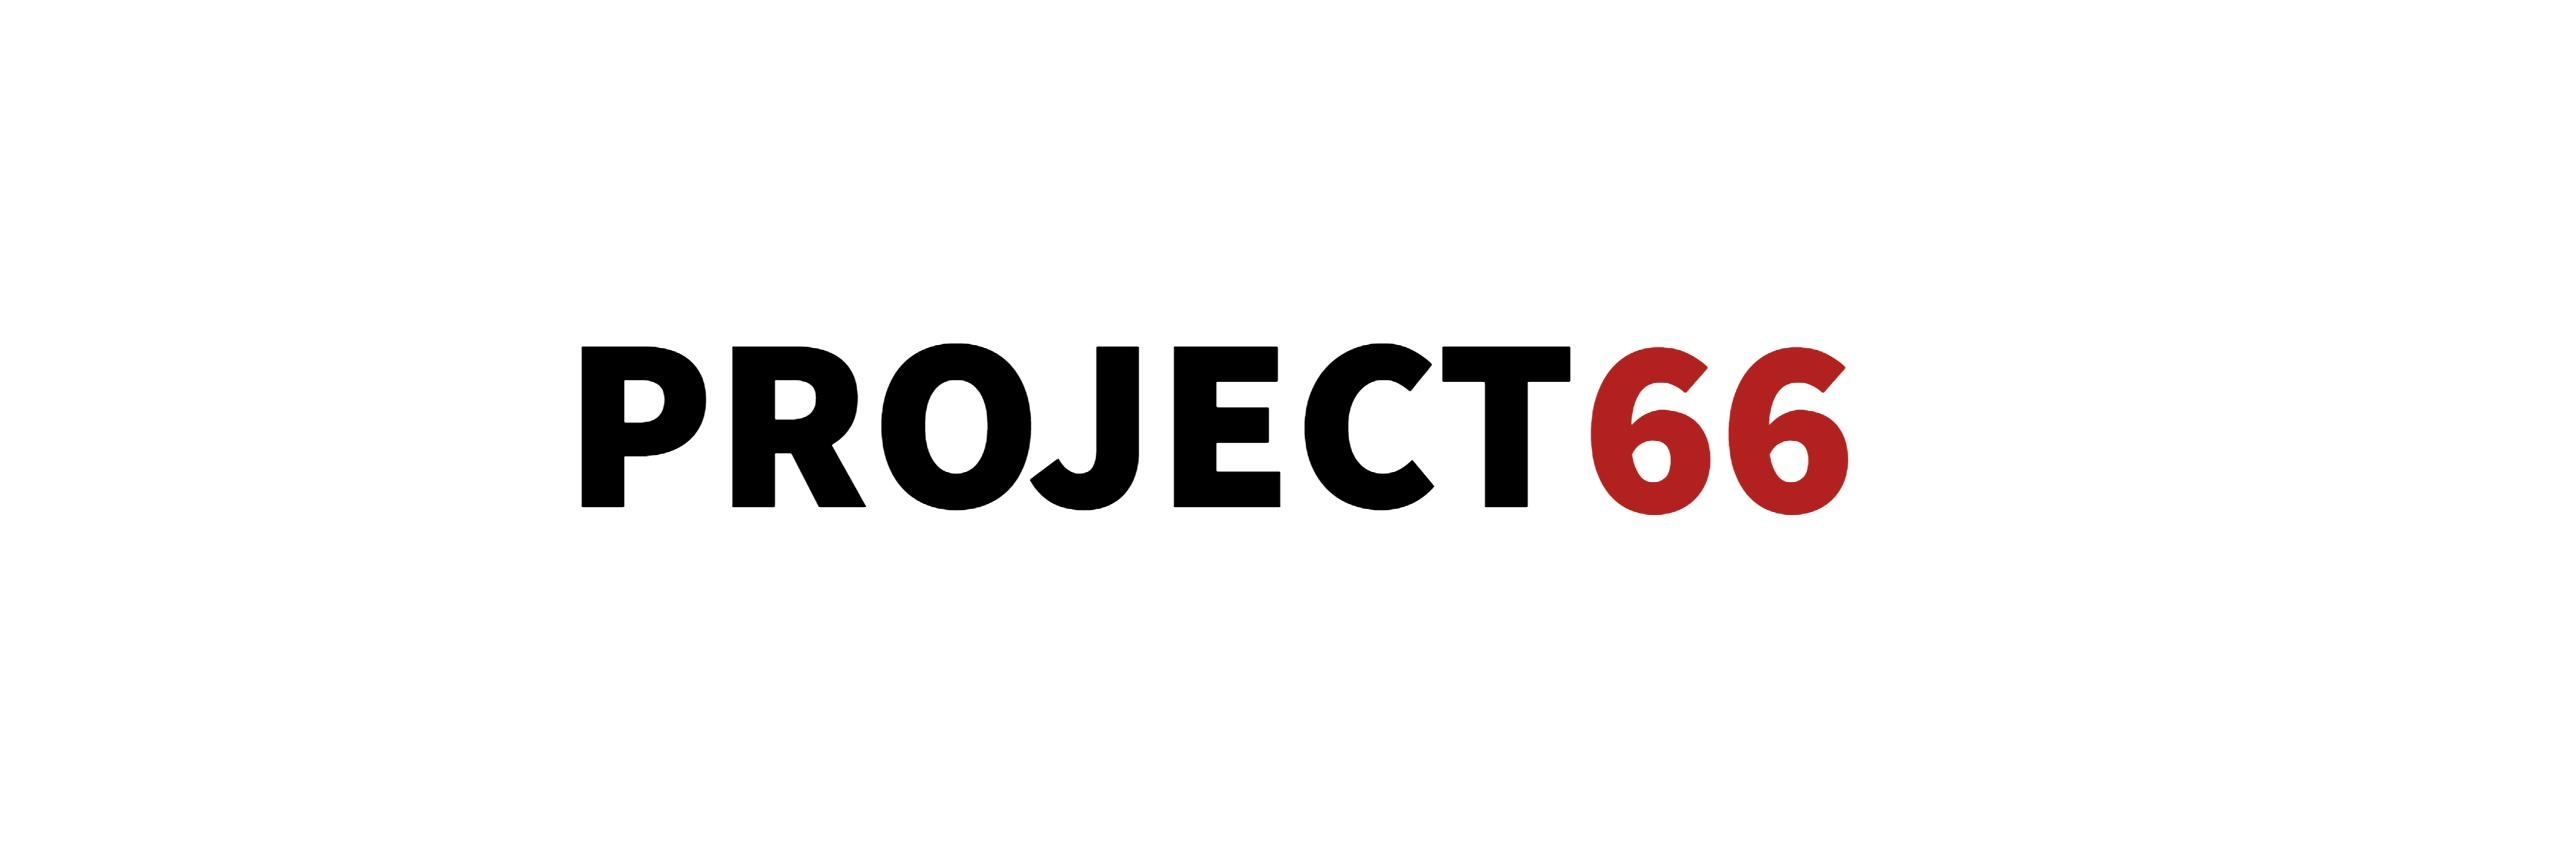 Project66